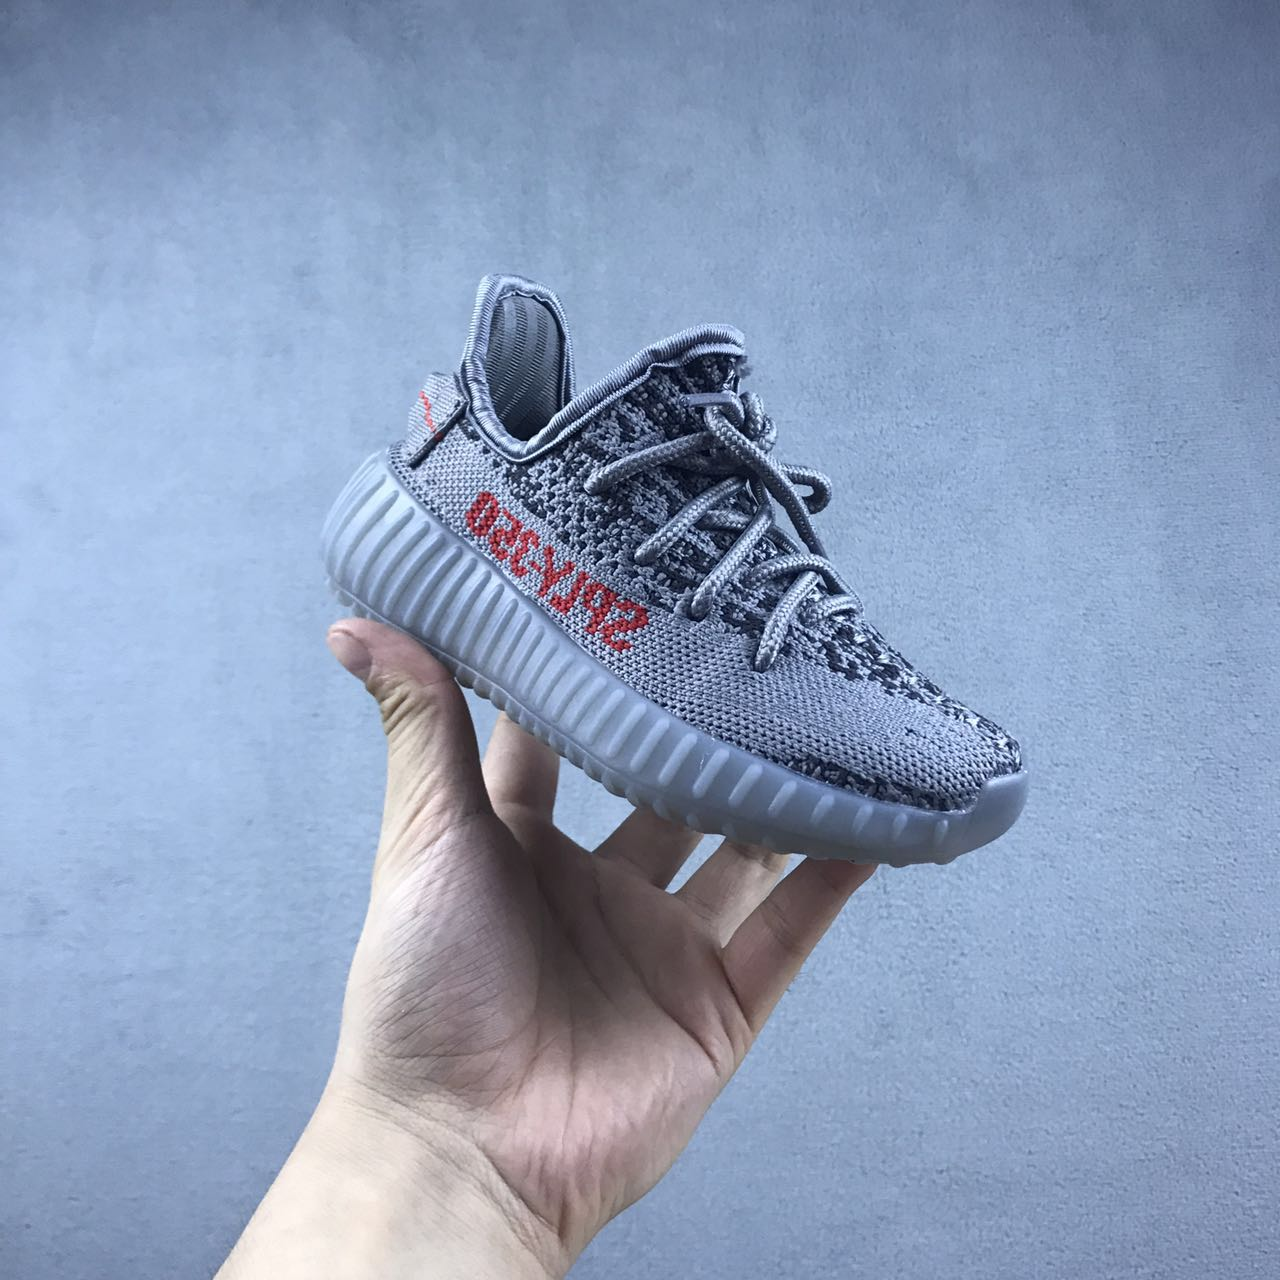 New Kids Yeezy Boost 350 gray